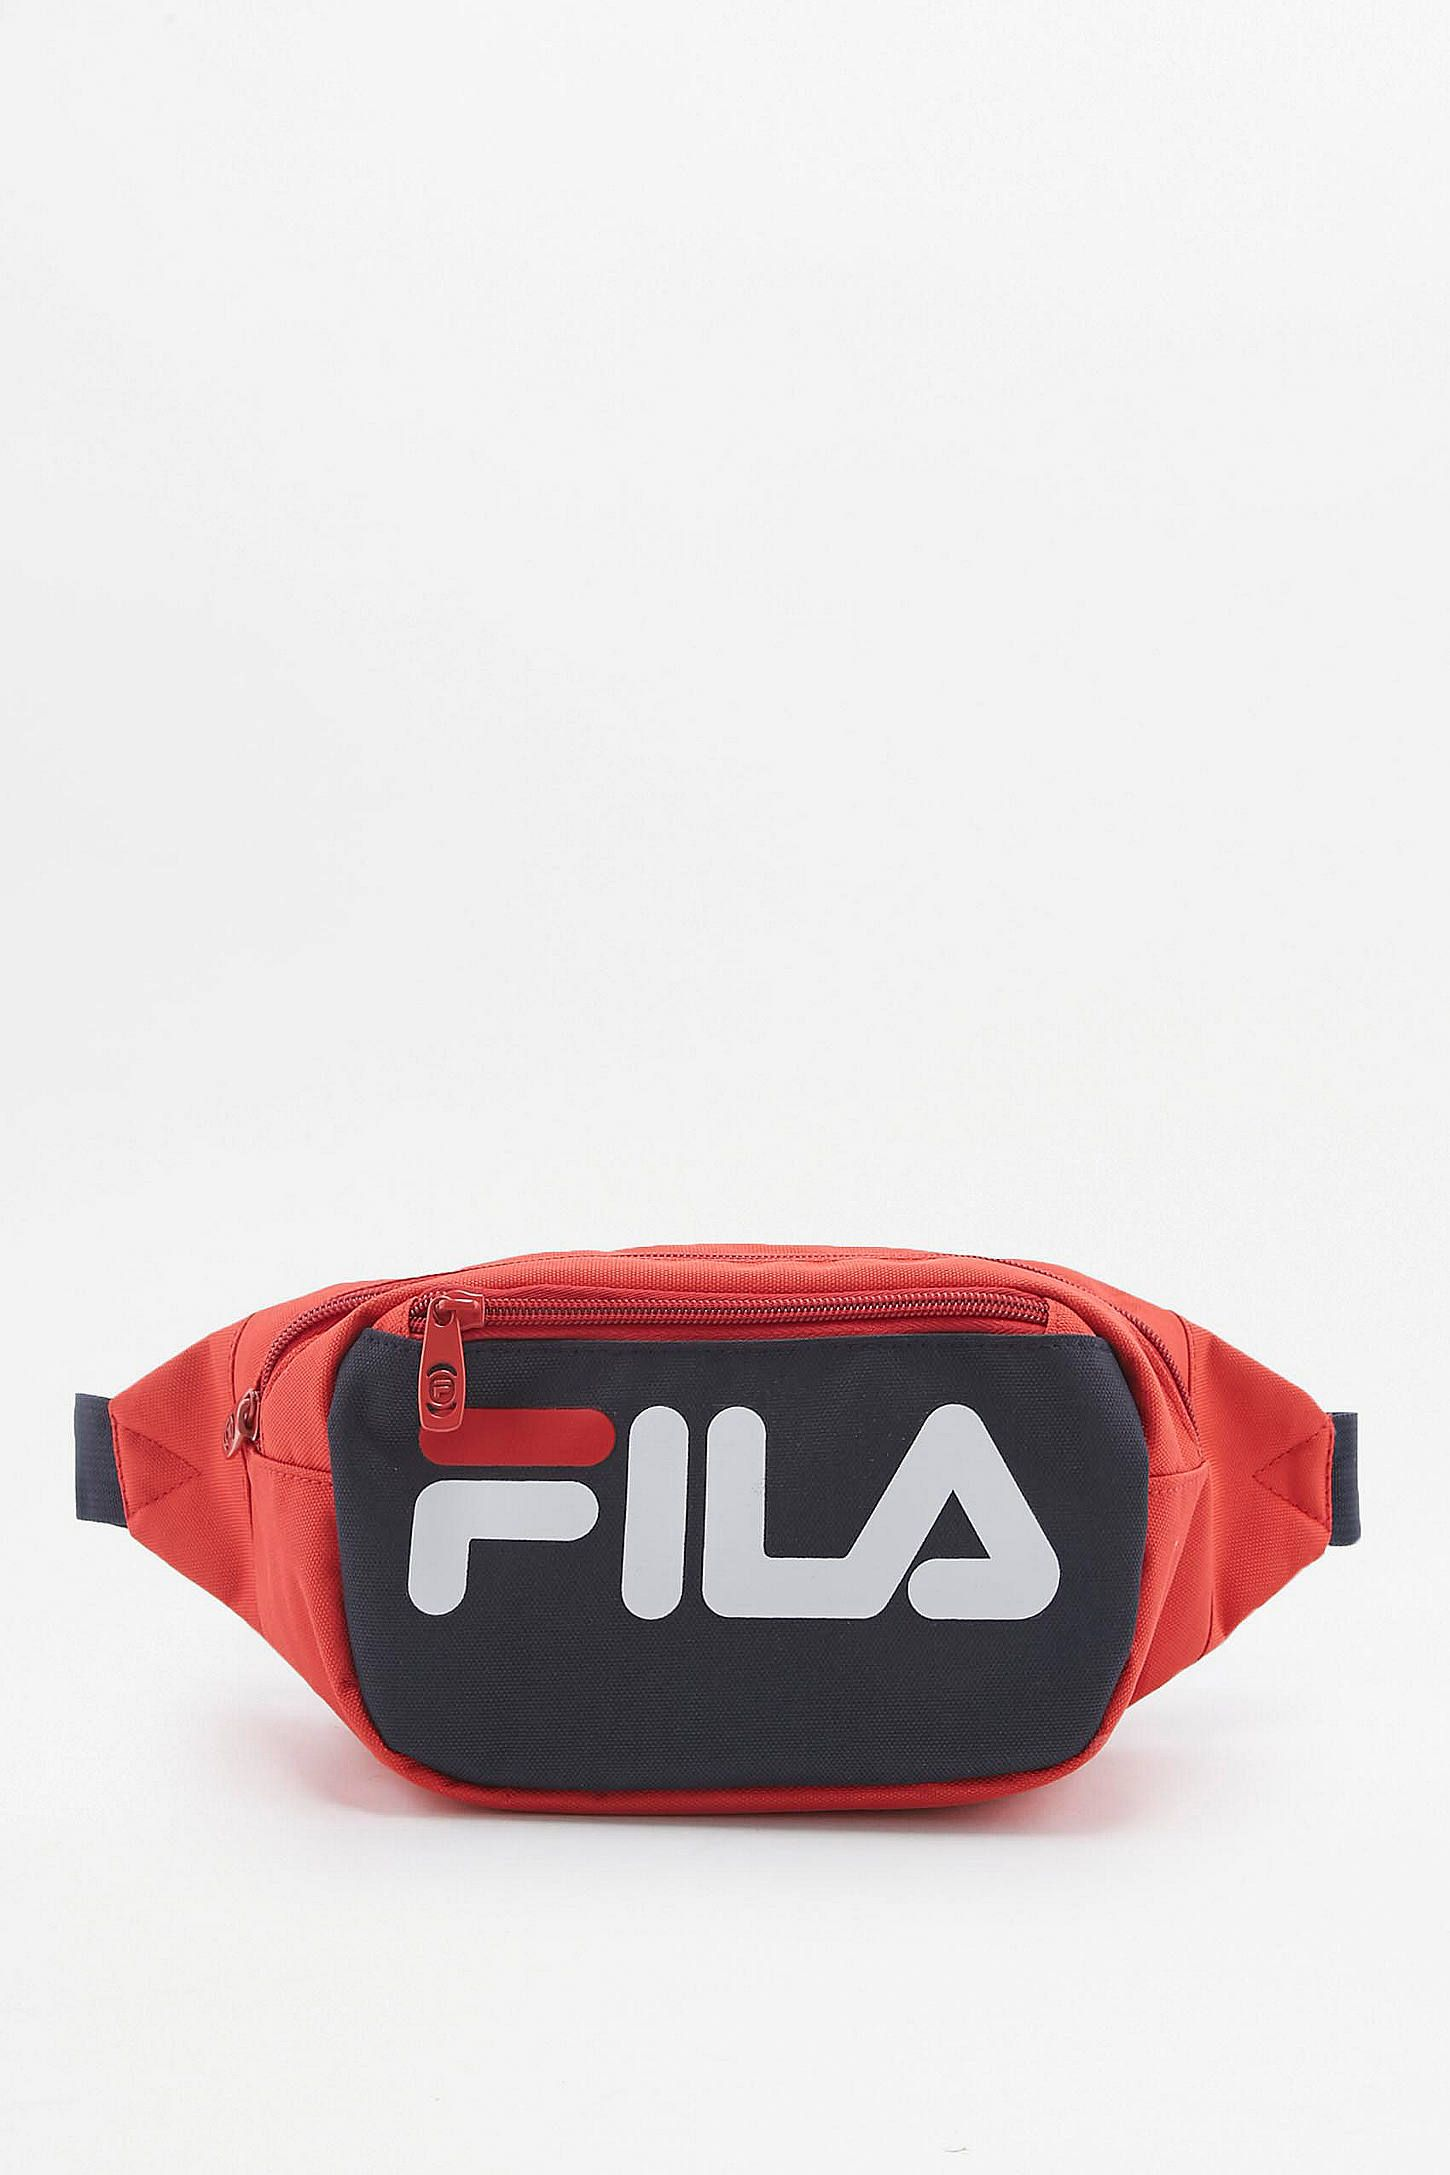 slide view 1 fila adams peacoat courier waist pack sac banane pinterest sac banane. Black Bedroom Furniture Sets. Home Design Ideas